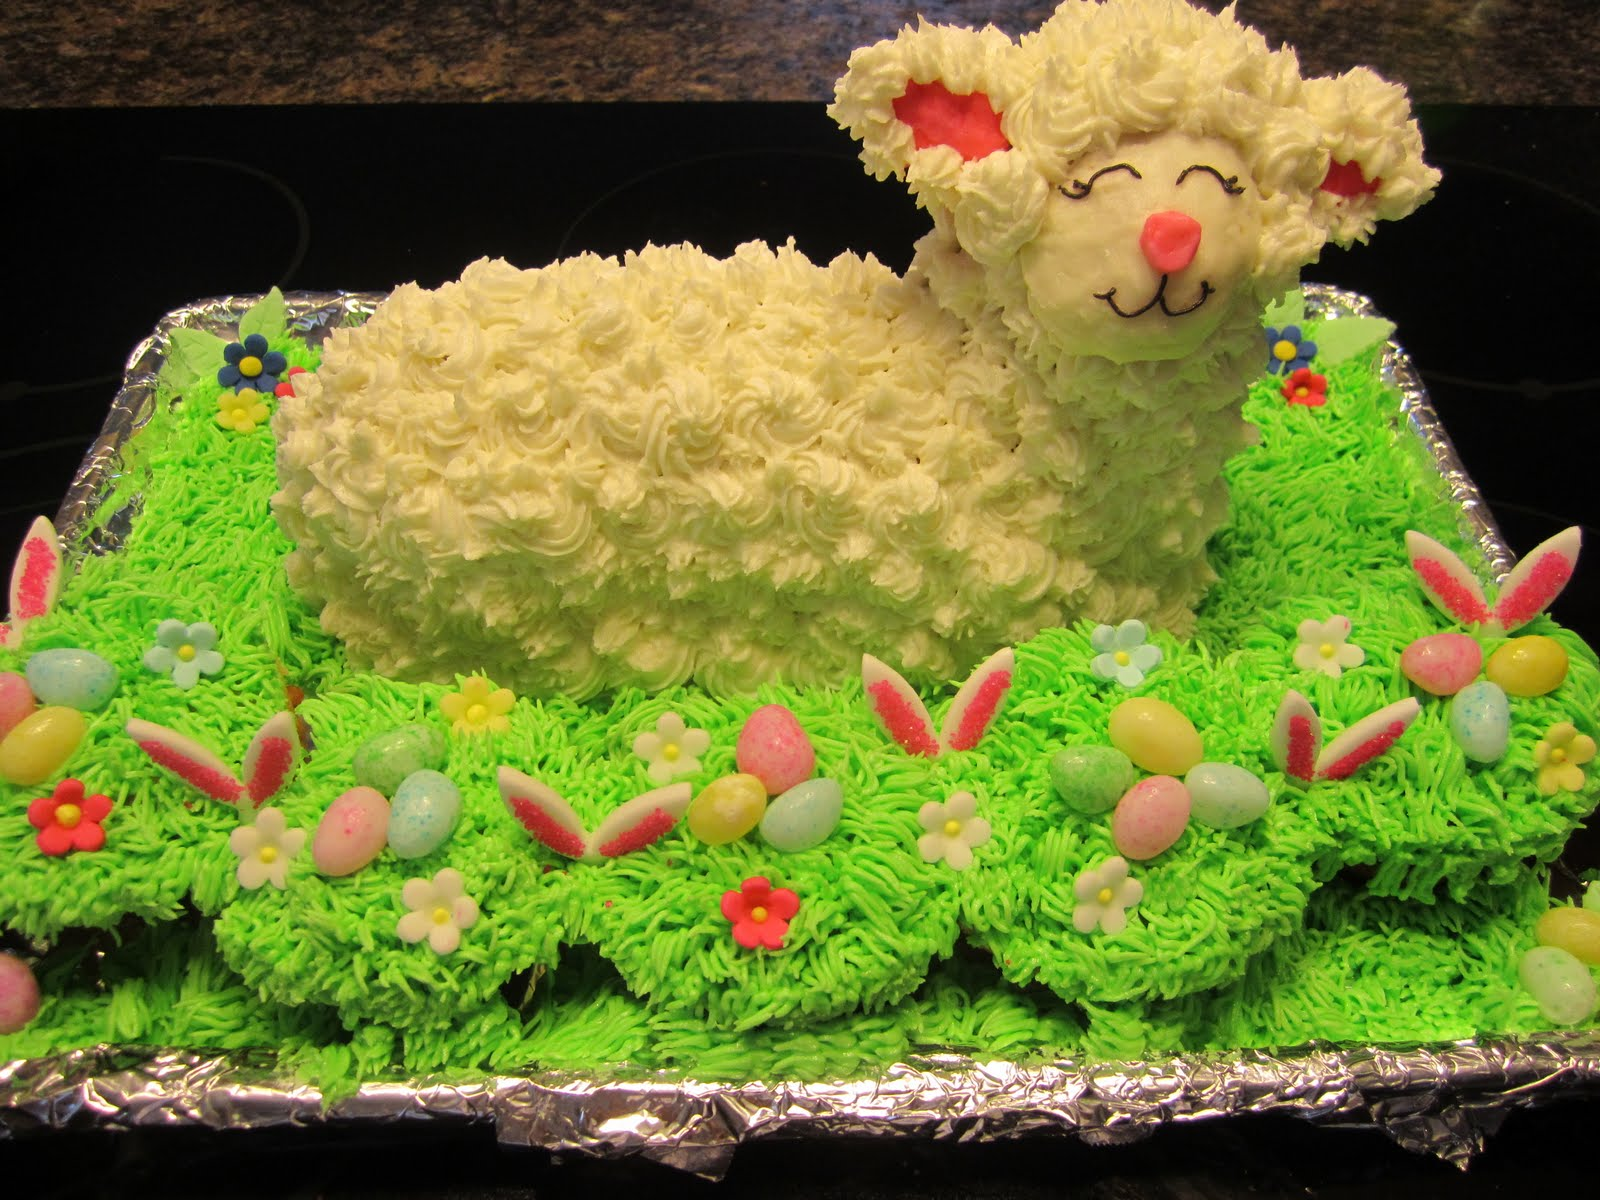 My Cake Blog: Easter Lamb Cake